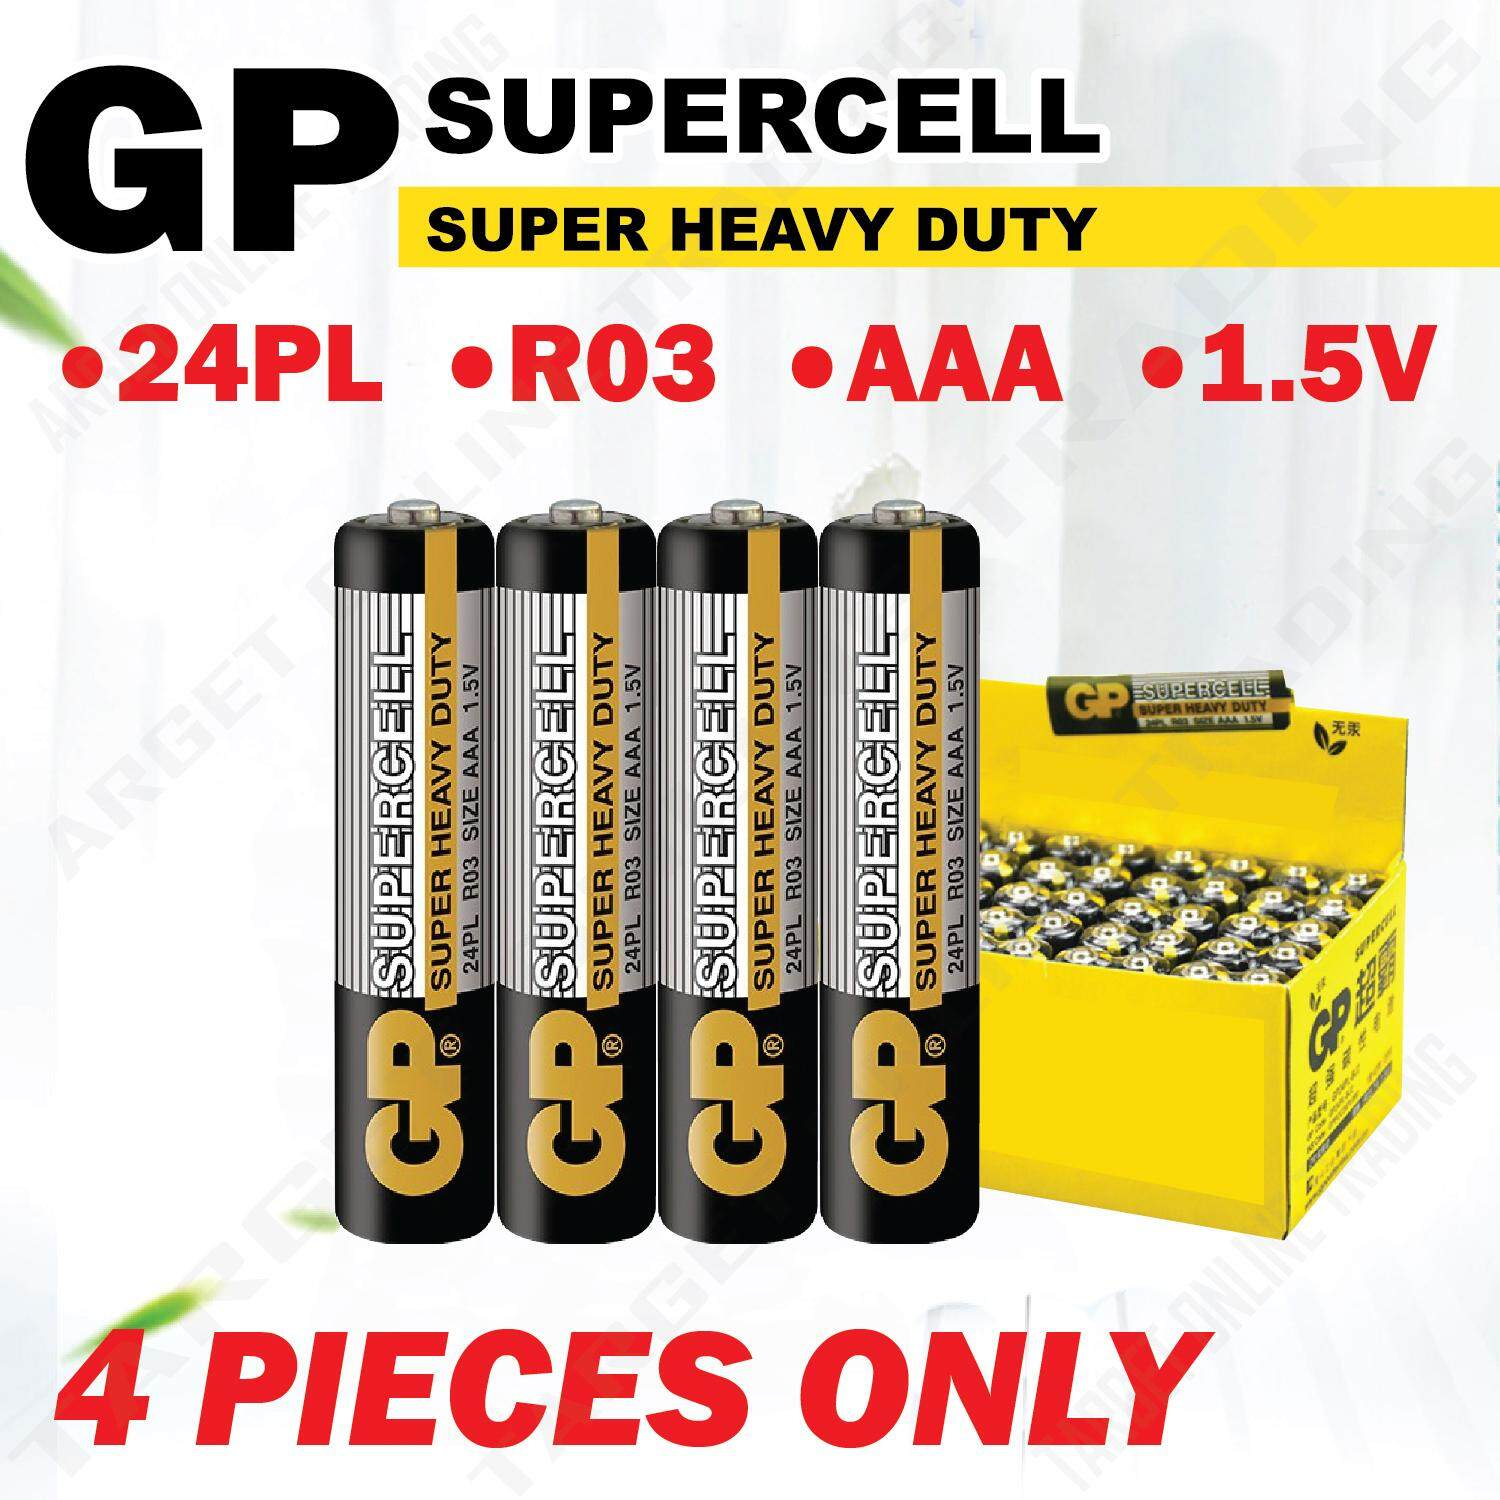 GP SUPERCELL Super Heavy Duty AA 1.5V Battery Batteries 4 Pieces ONLY